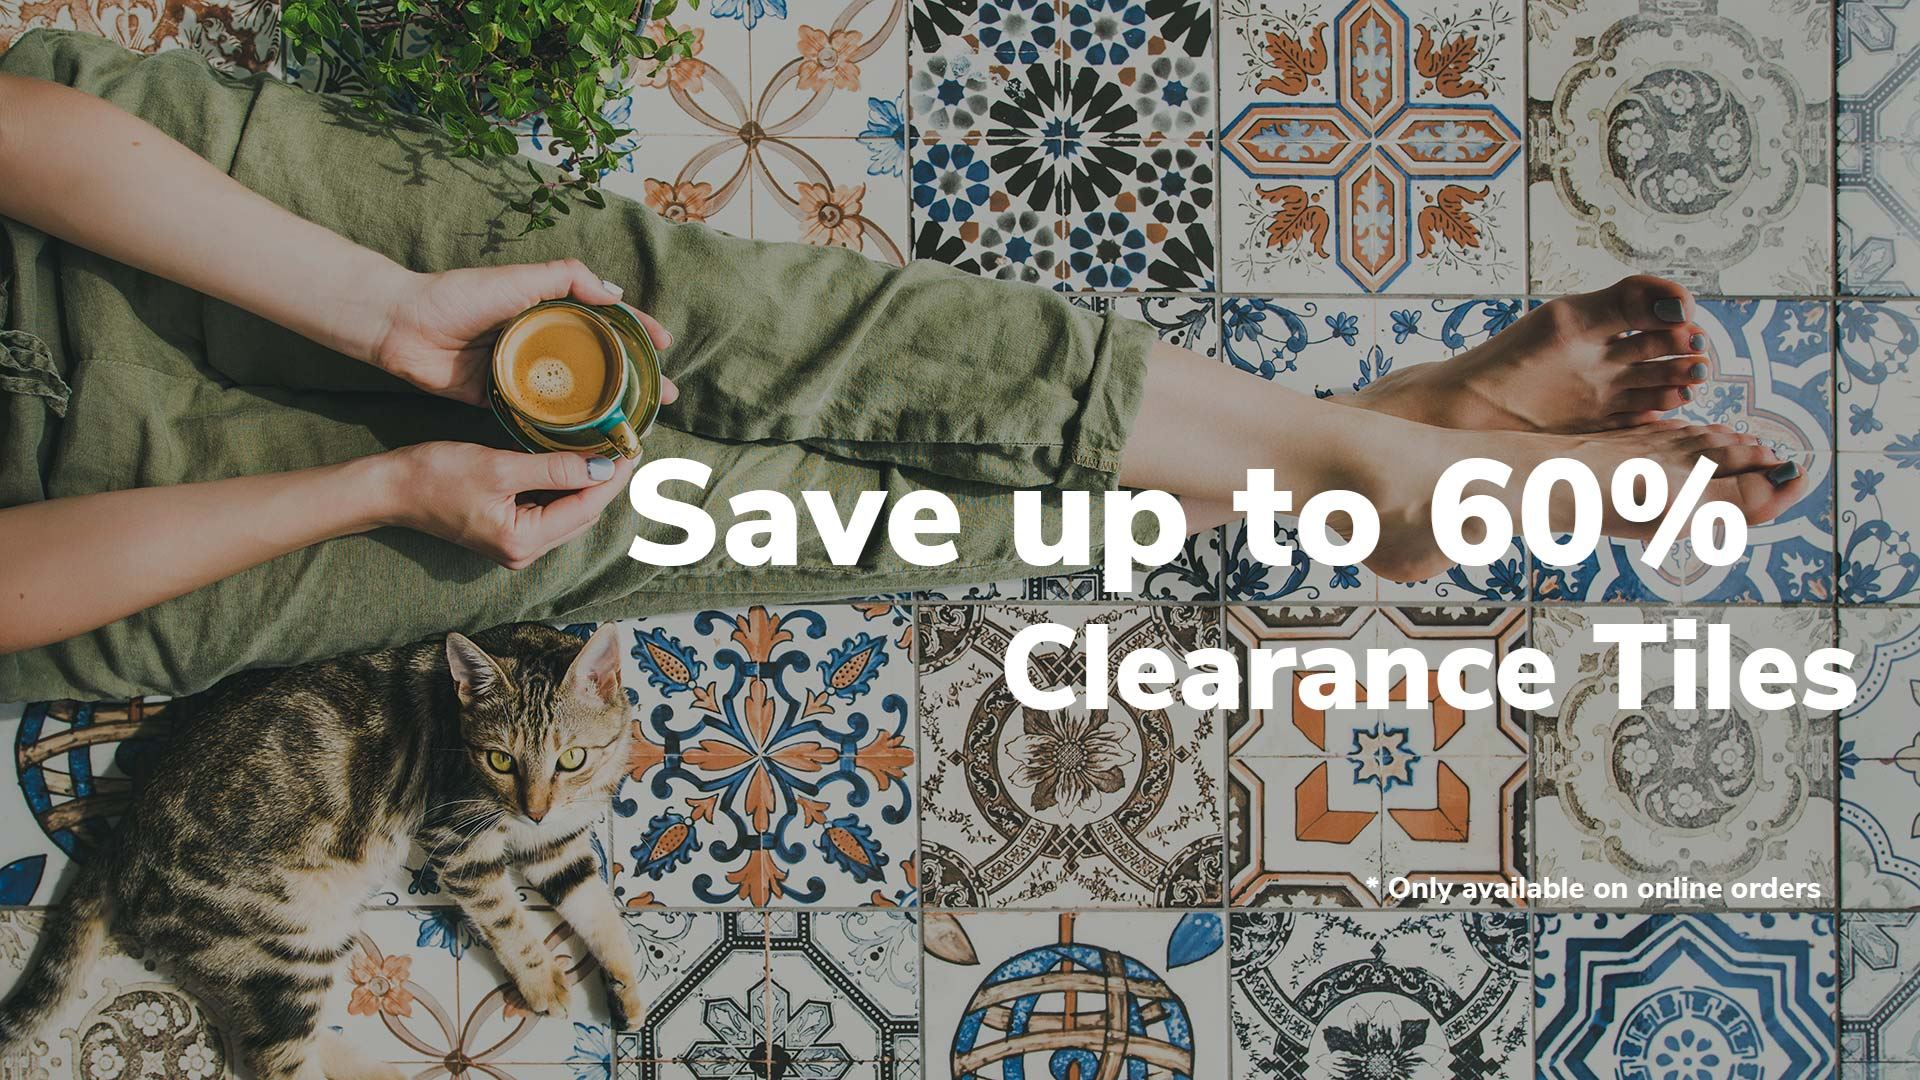 Tile Clearance, Clearance Tiles, Cheap Tiles, Tile Sale